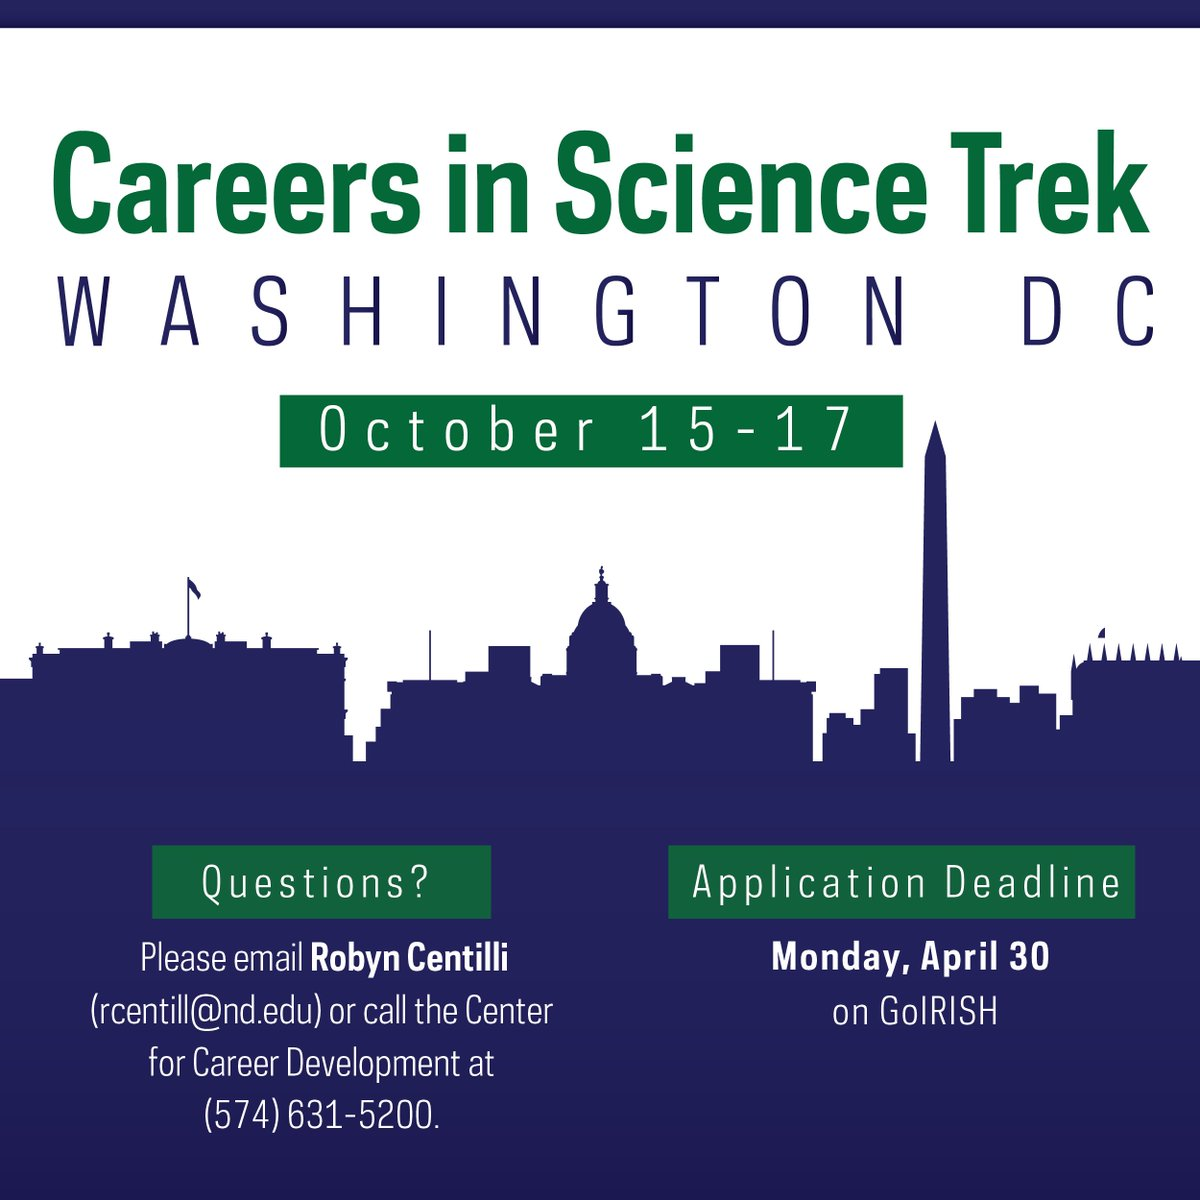 ND Center for Career Development on Twitter: